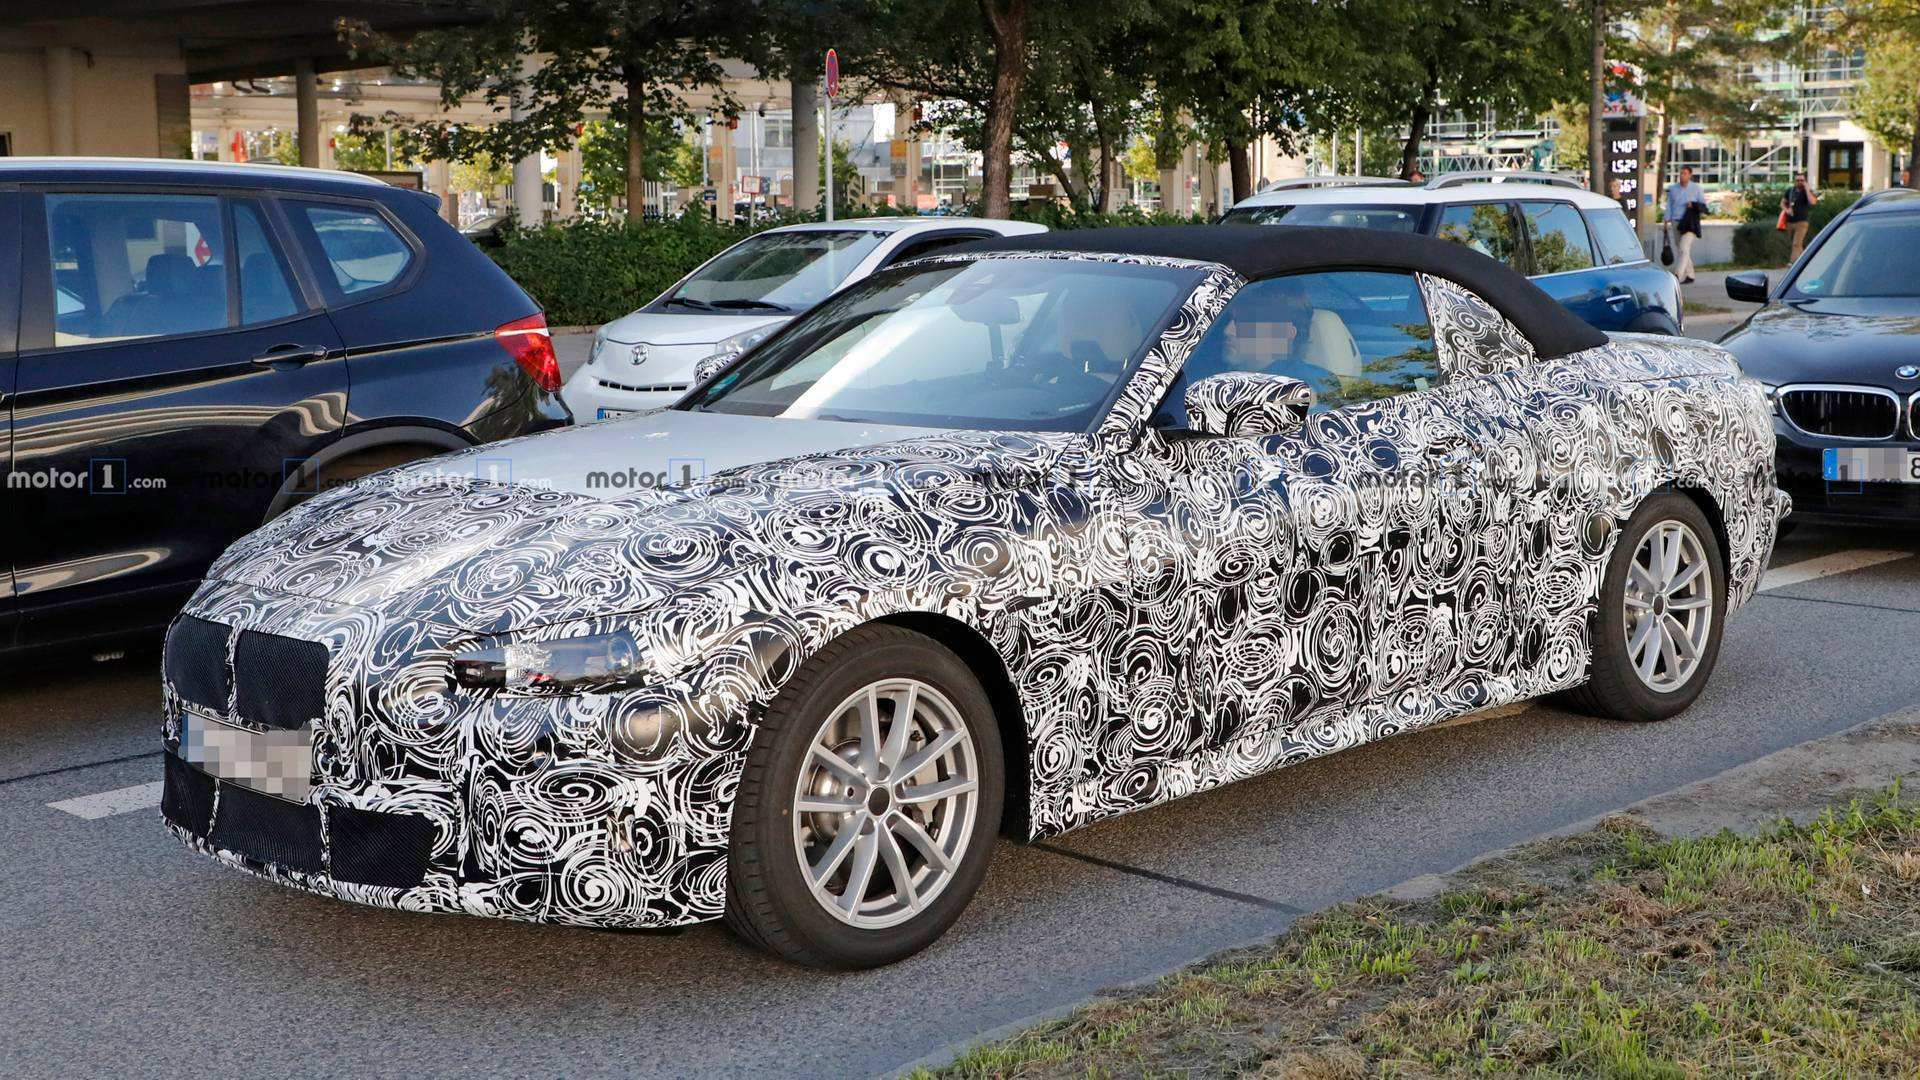 50 All New 2020 Bmw 4 Series Release Date Spy Shoot with 2020 Bmw 4 Series Release Date